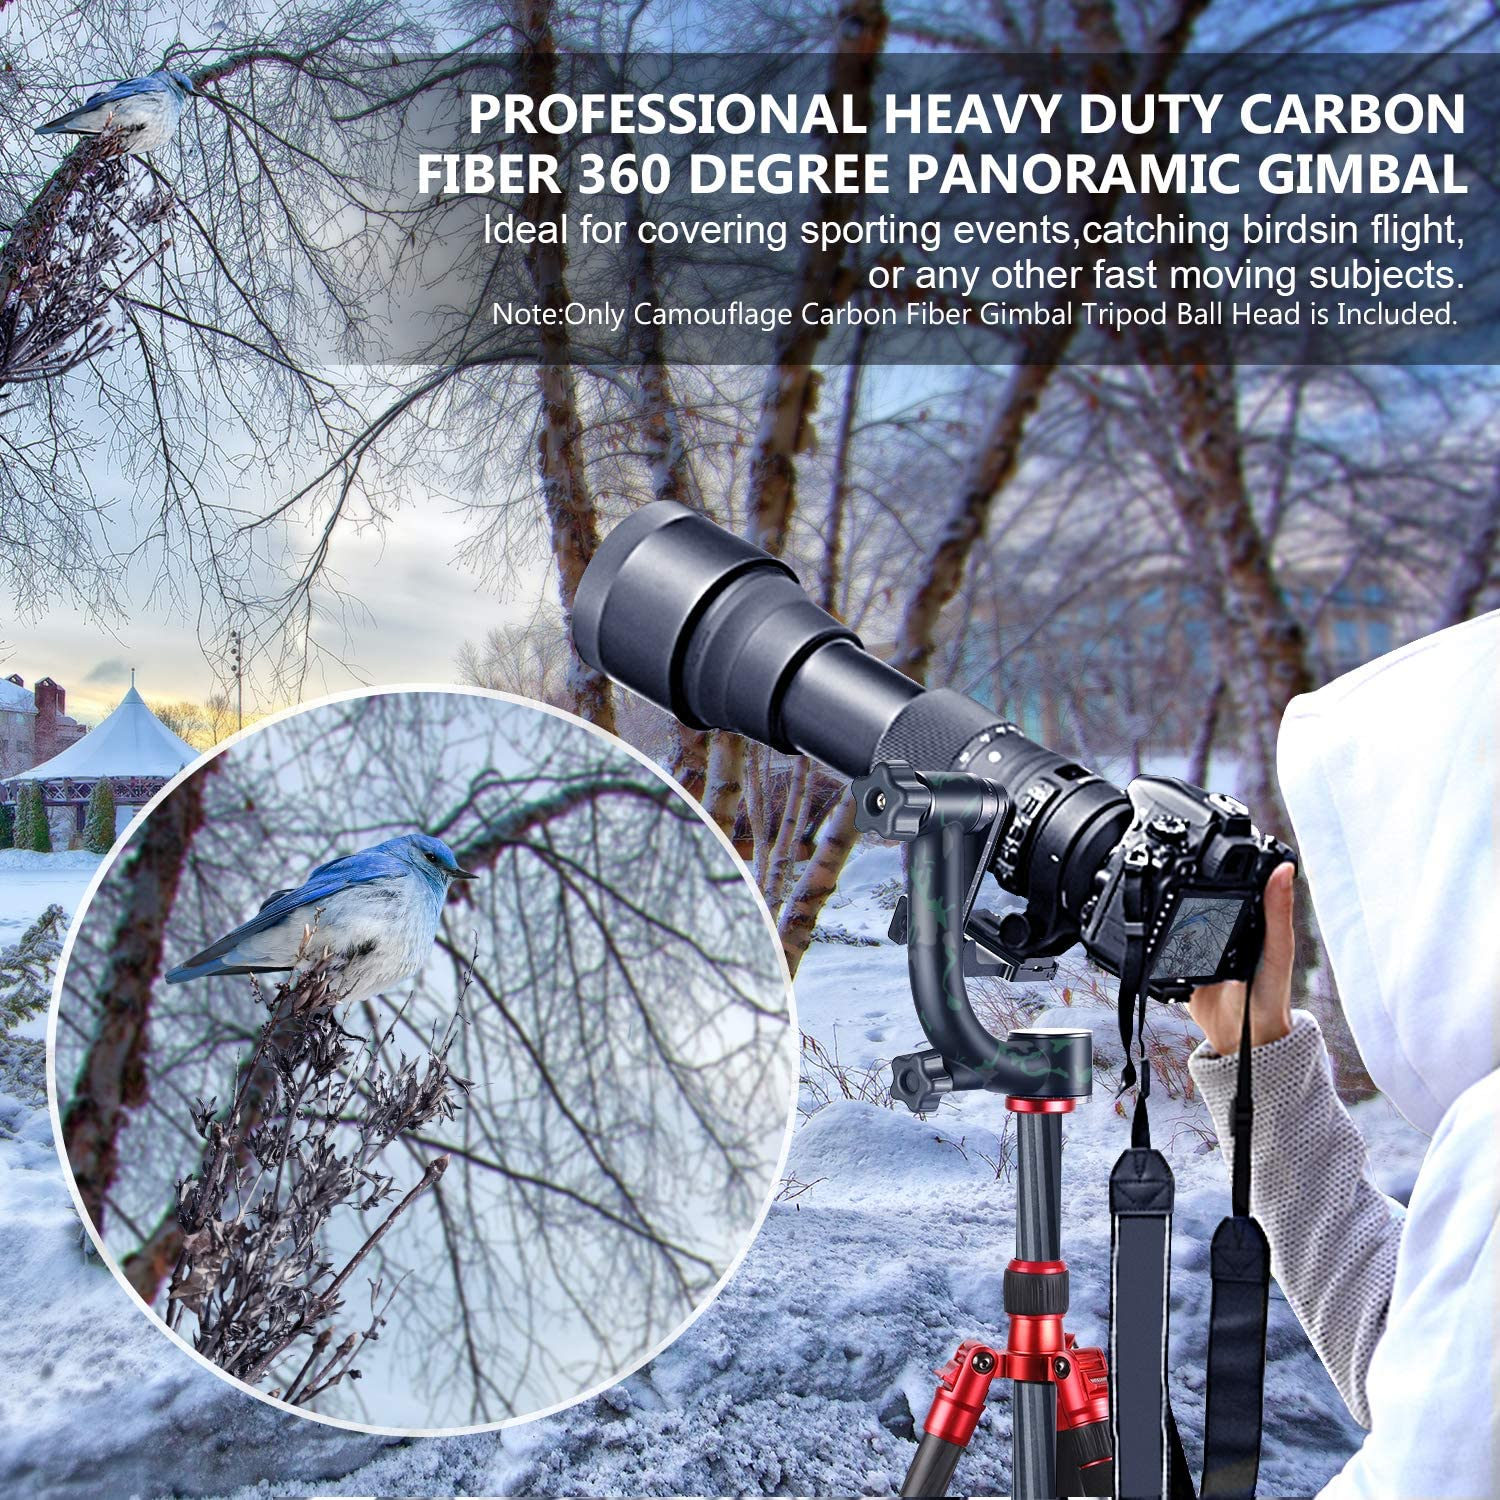 Neewer Professional Gimbal Head Tripod Head Carbon Fiber Heavy Duty 360 Degree Panoramic with Arca-Swiss Standard 1//4 inch QR Plate for DSLR Cameras up to 30pounds//13.6kilogram Camouflage